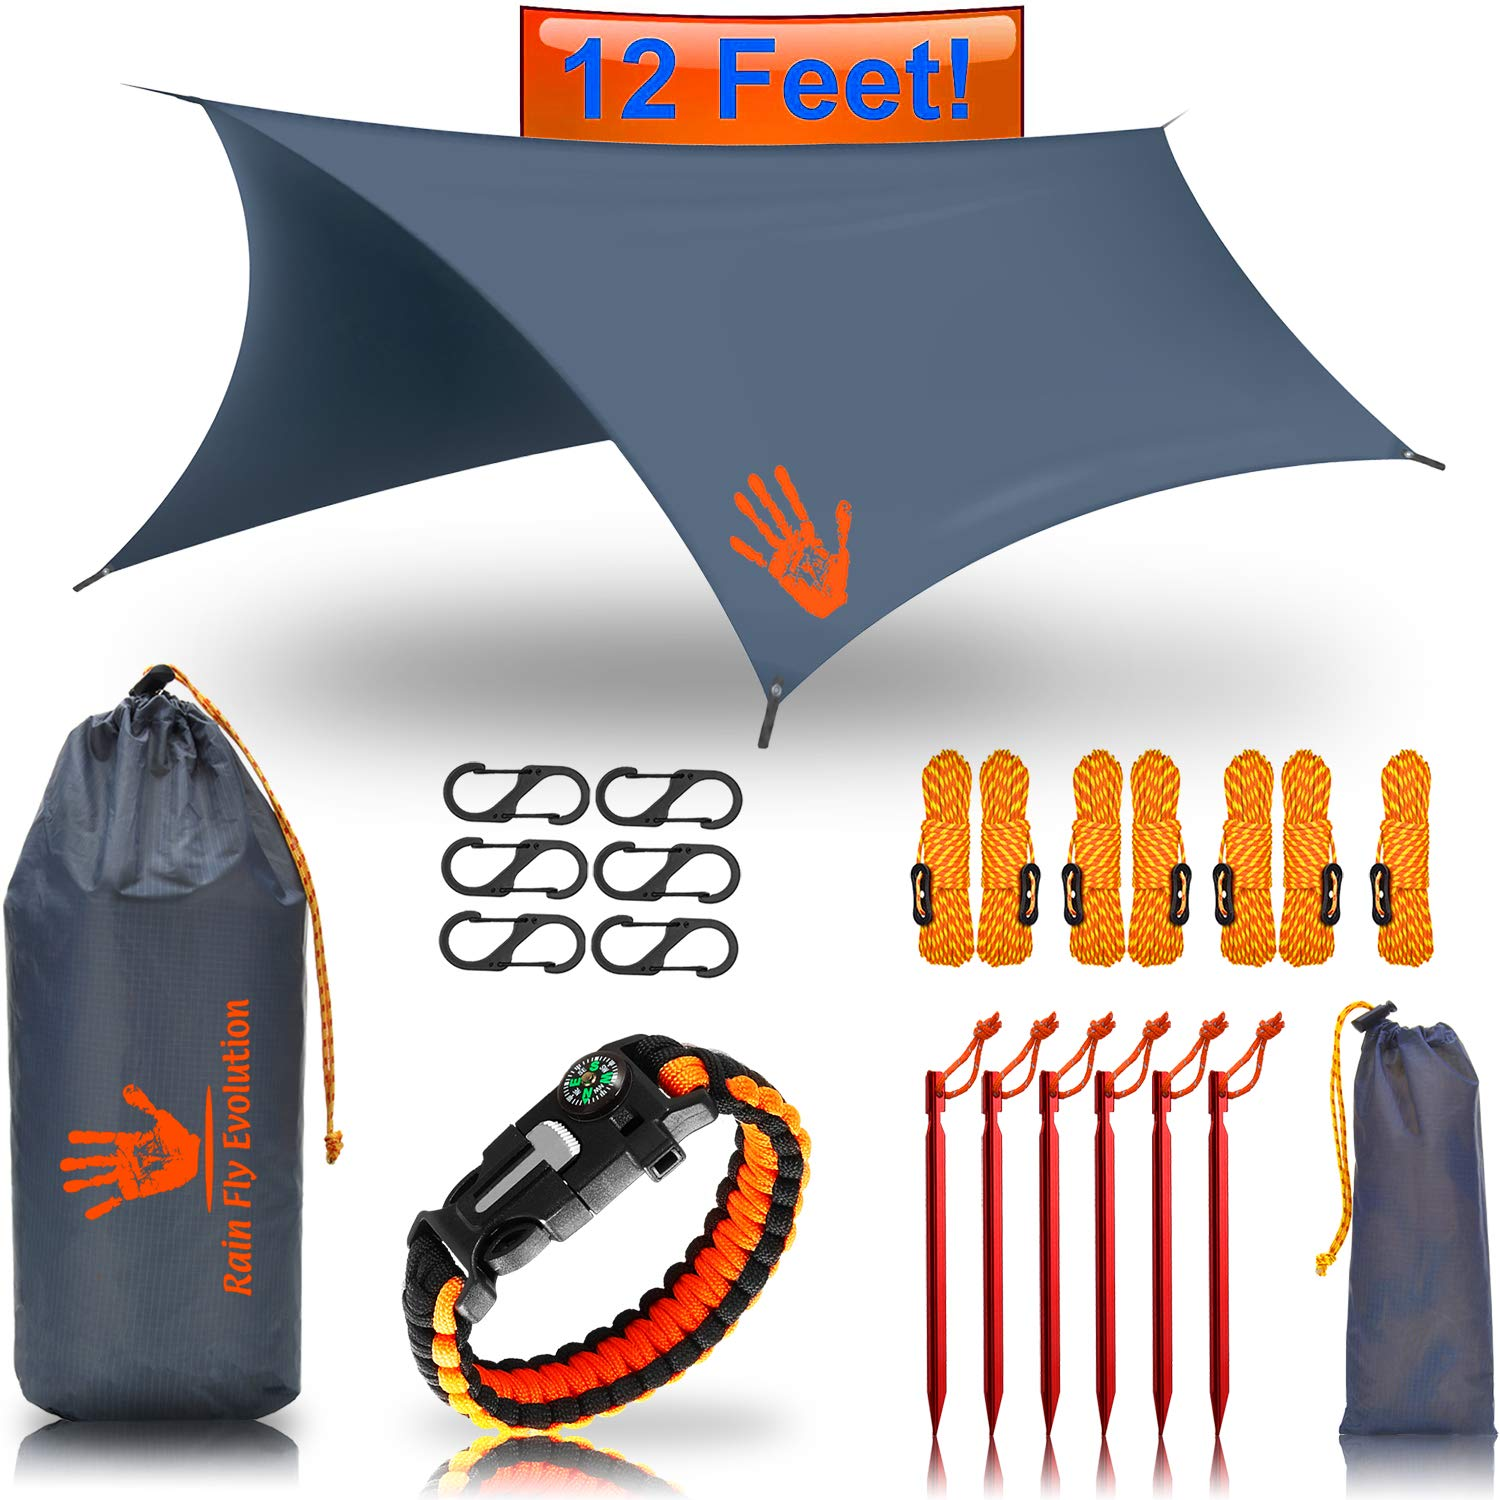 RainFlyEVOLUTION 12 x 10 ft HAMMOCK WATERPROOF RAIN FLY TENT TARP & Survival Bracelet Kit - Lightweight - Backpacker Approved - DIAMOND RIPSTOP NYLON - Perfect Hammock Shelter Sunshade for Camping   by Best Choice Products